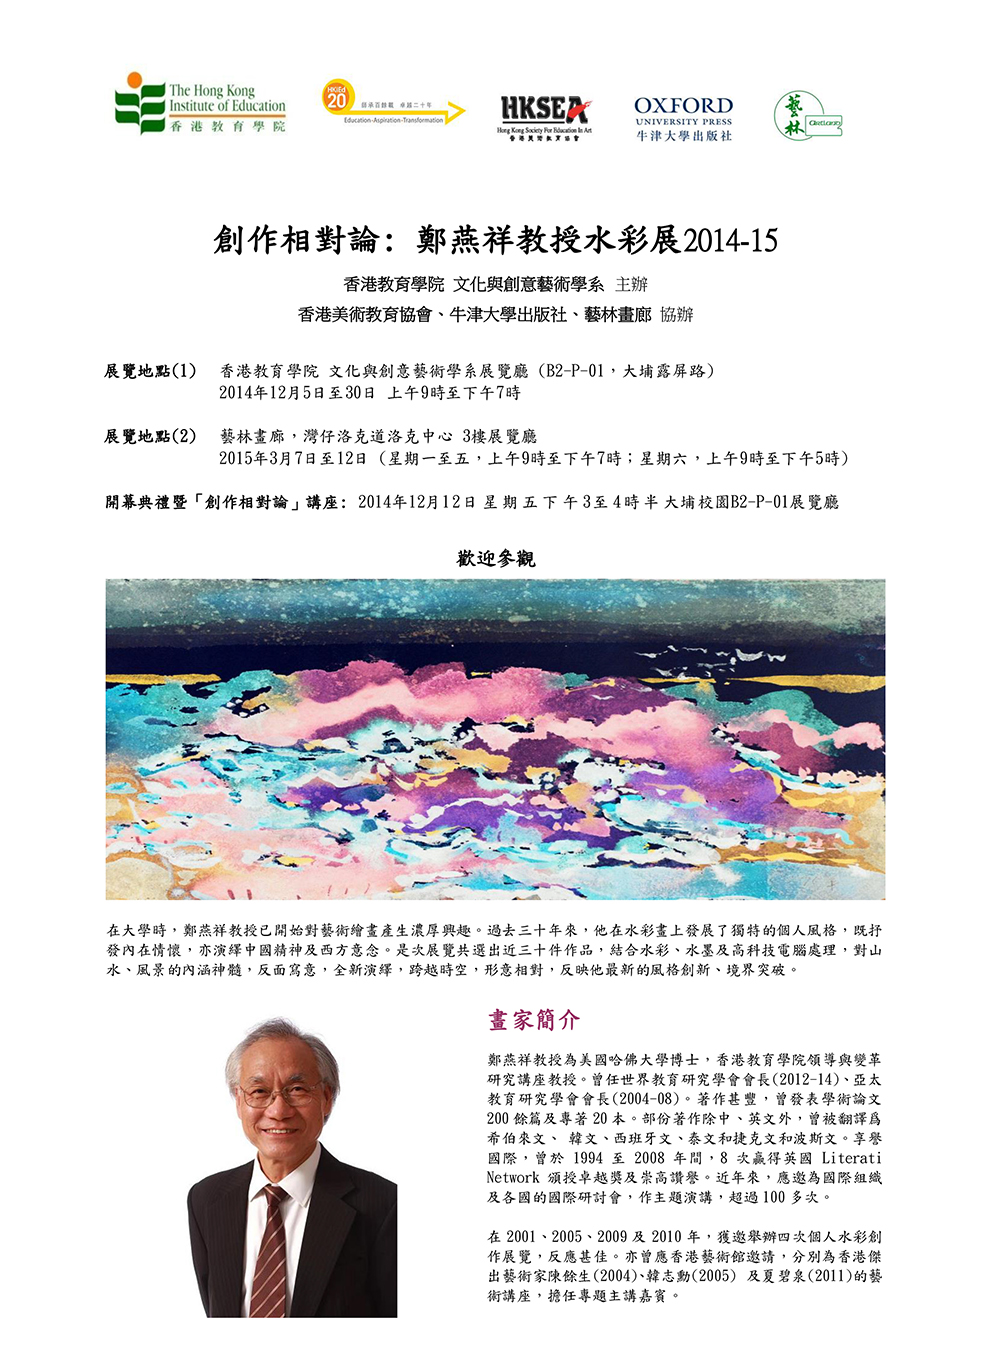 Creative Relativity - An Exhibition of Watercolor Works 2014-15 by Professor Cheng Yin Cheong Opening Ceremony & Art Seminar